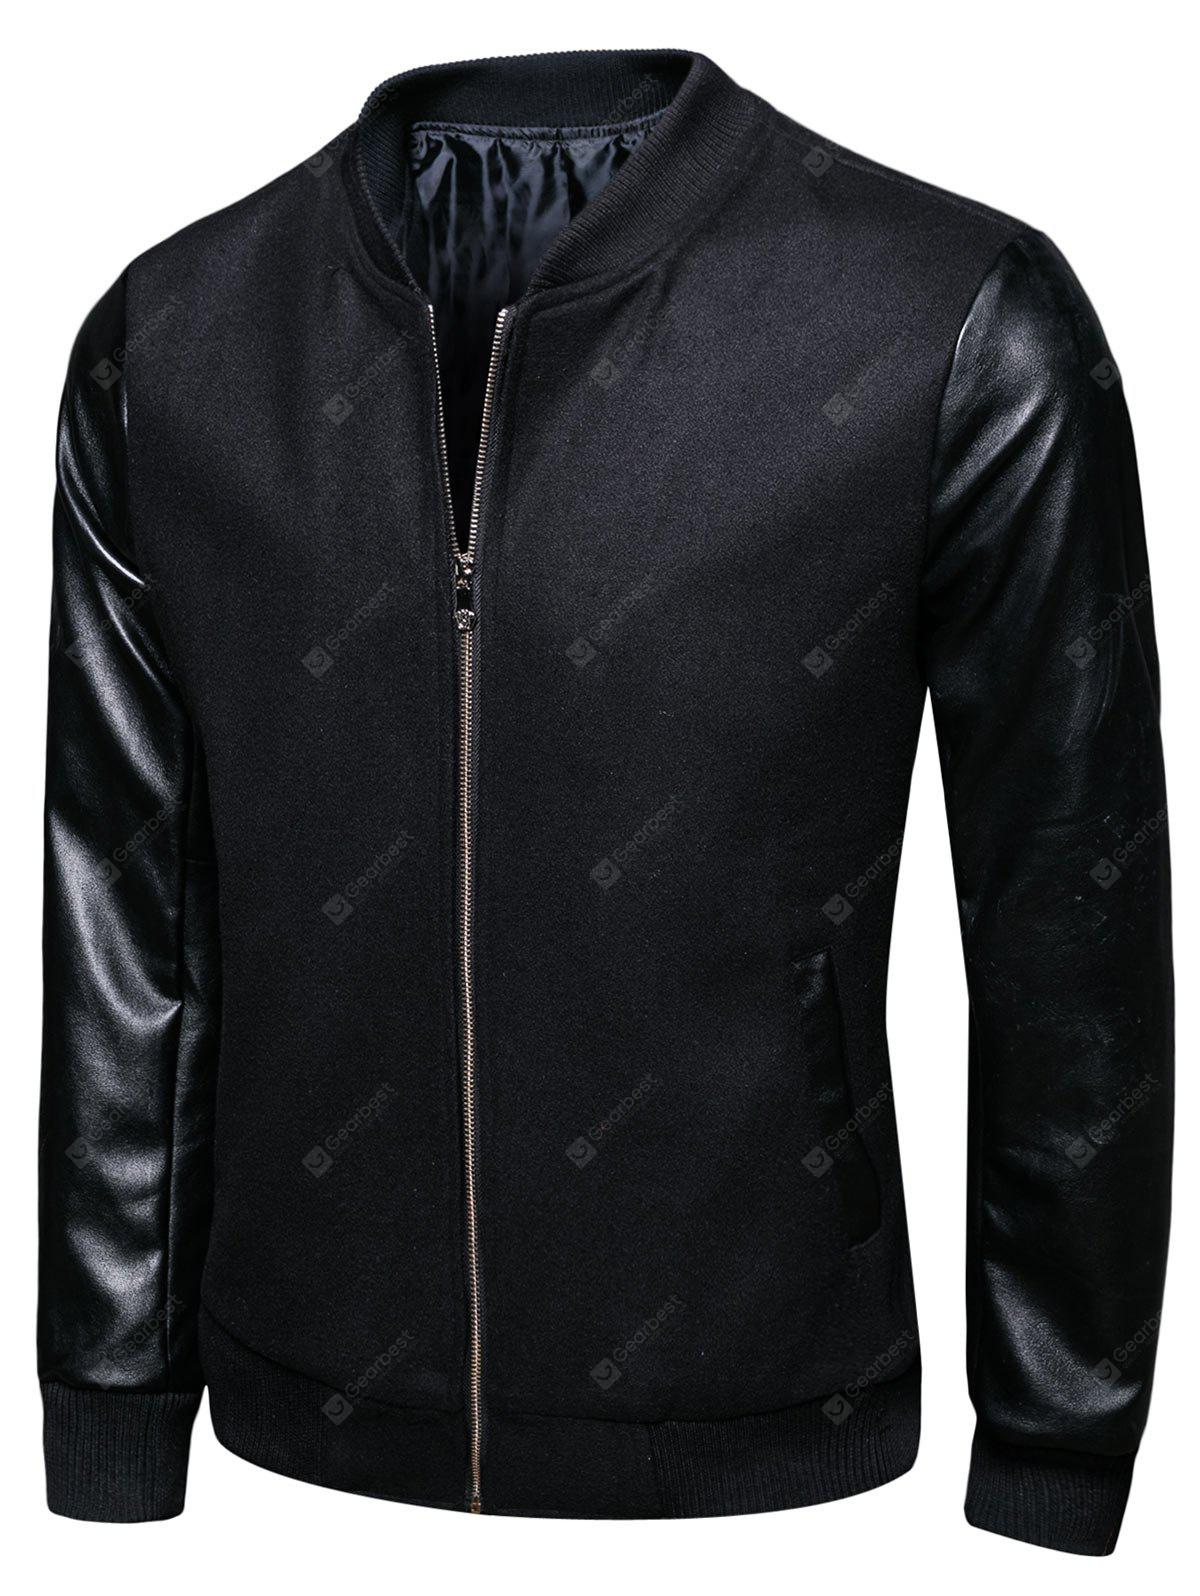 BLACK 2XL Stand Collar Woolen PU Leather Panel Jacket